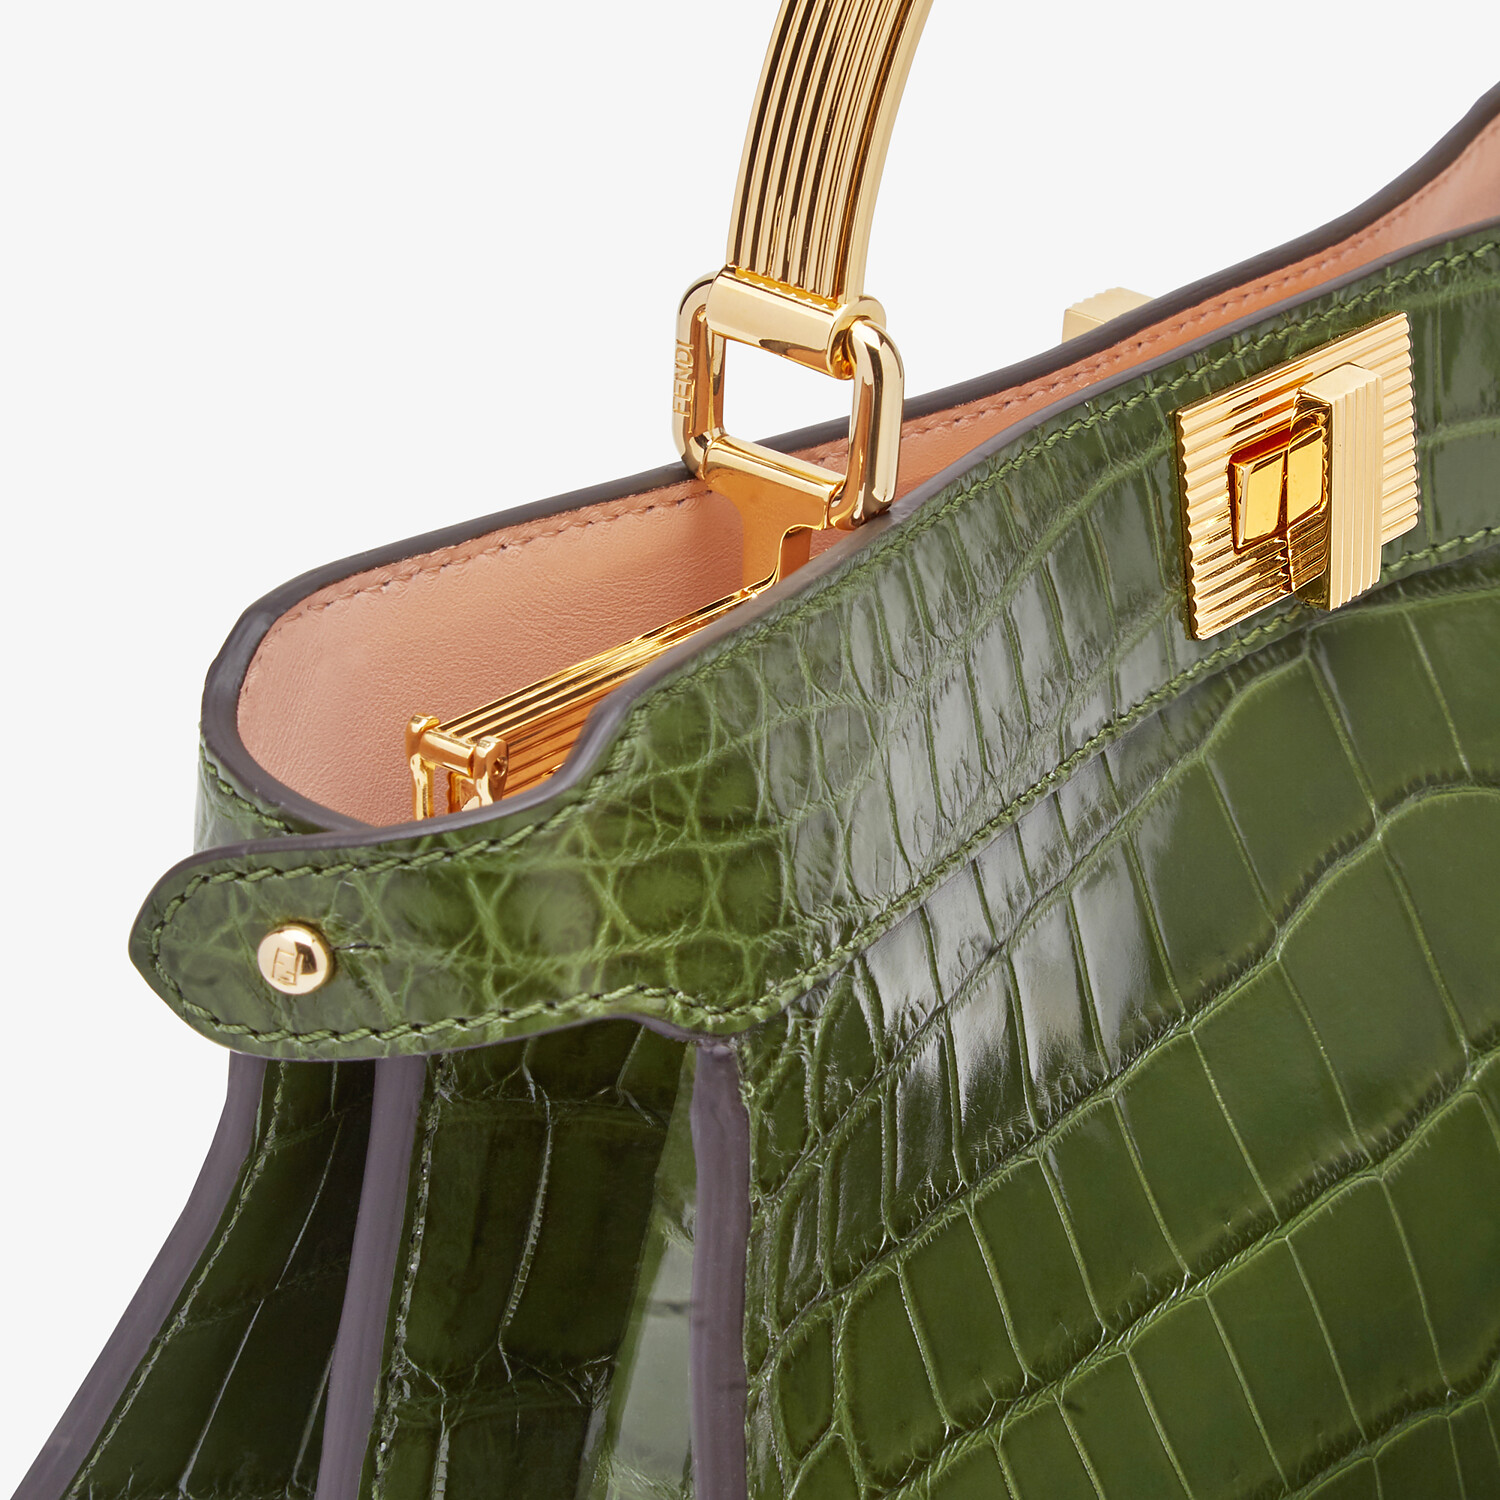 FENDI PEEKABOO I SEE U EAST-WEST - Green crocodile bag - view 6 detail